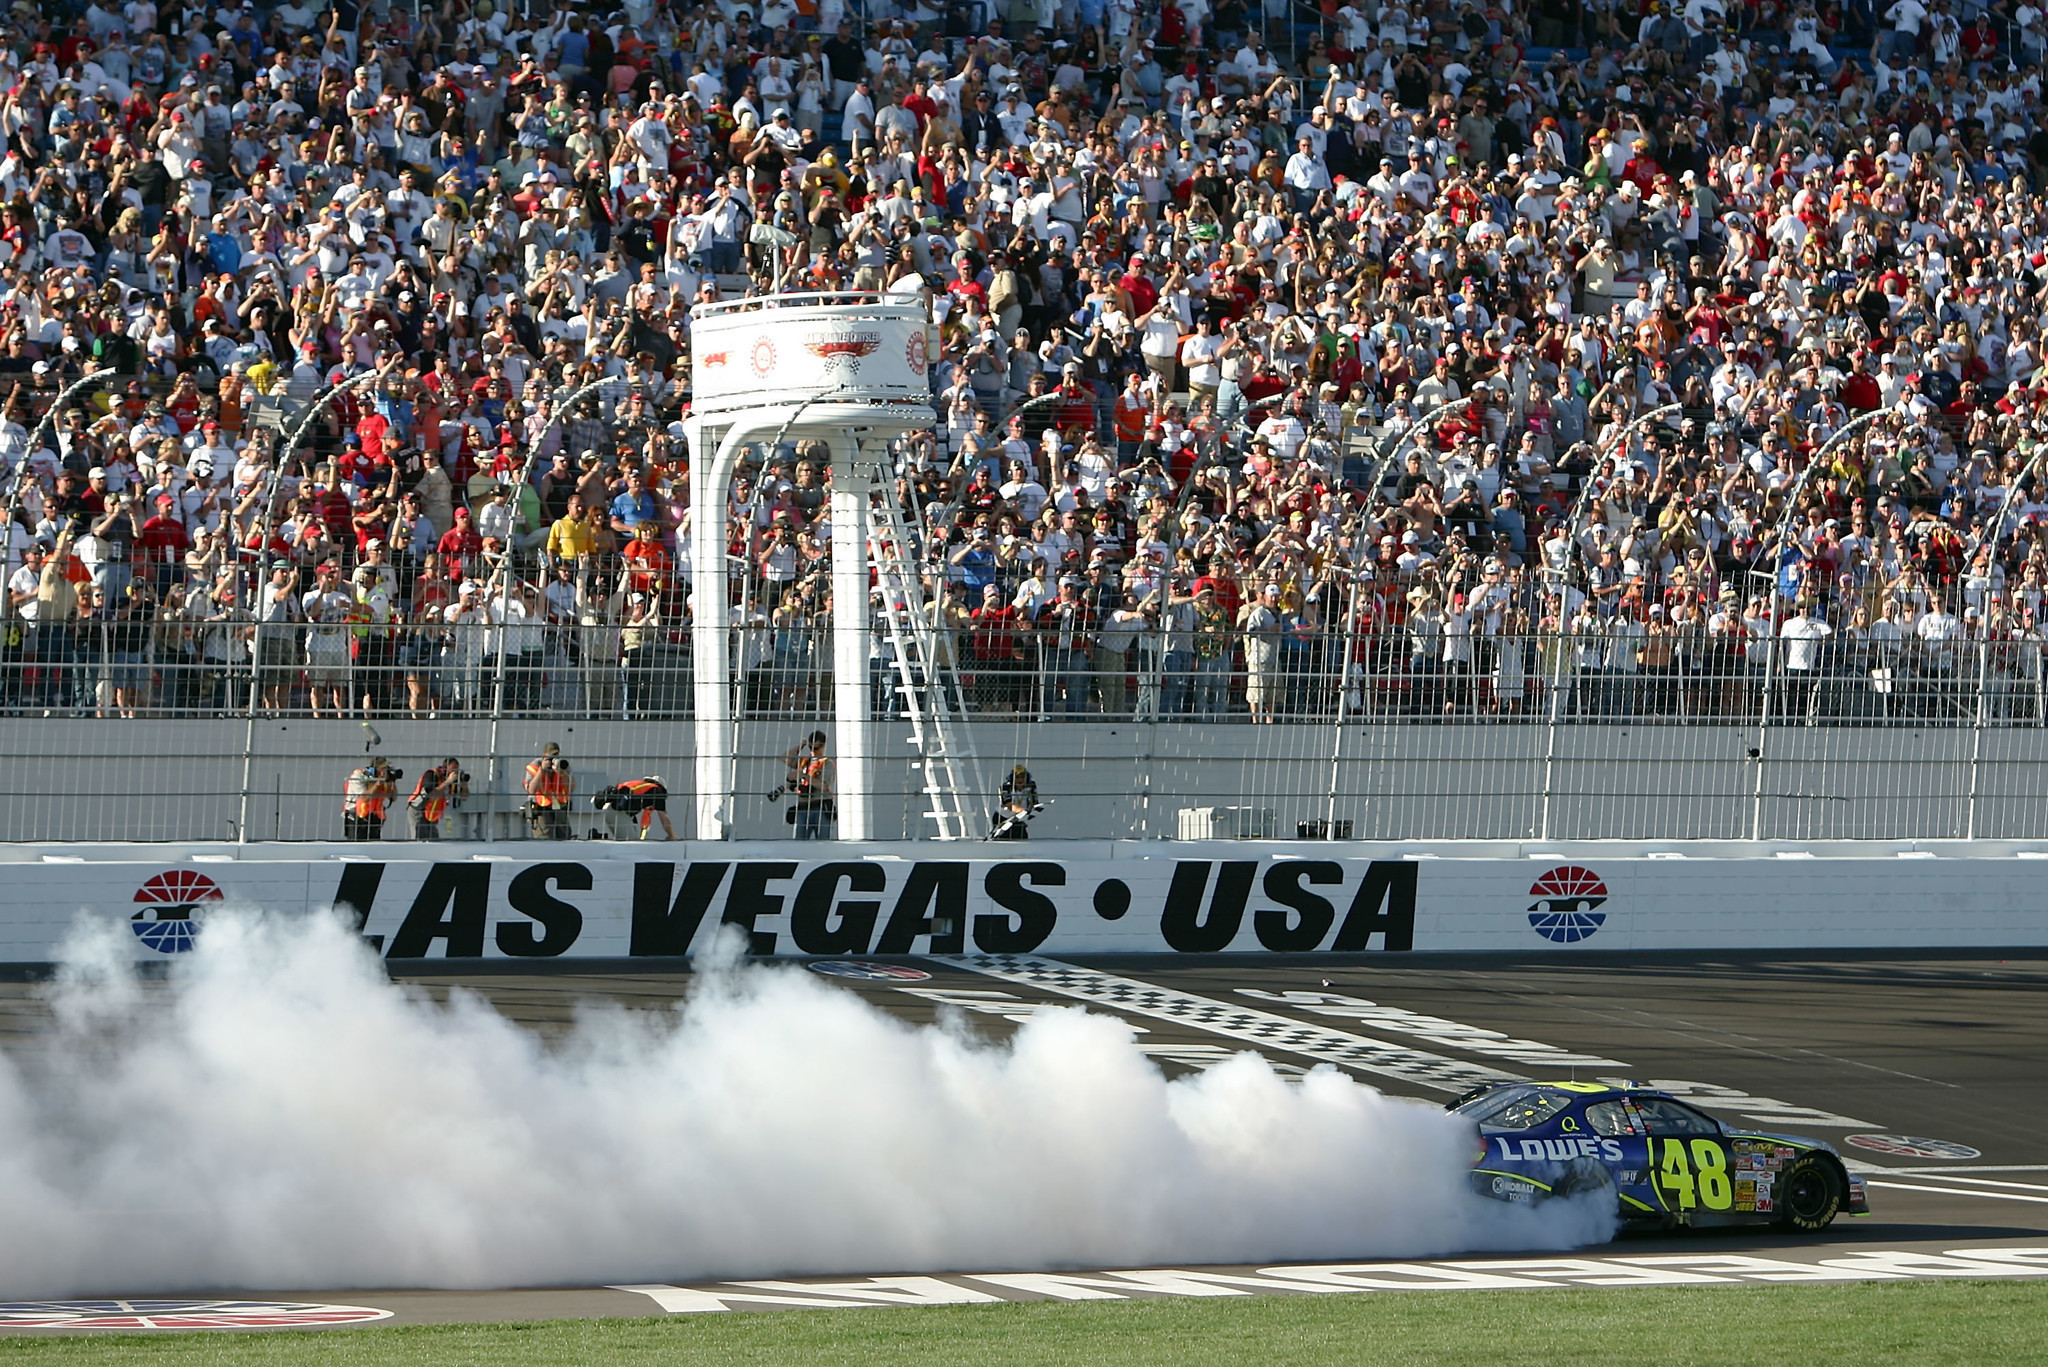 Nascar Schedule Shakeup Looks To Revive Stagnant Fan Base Orlando Sentinel